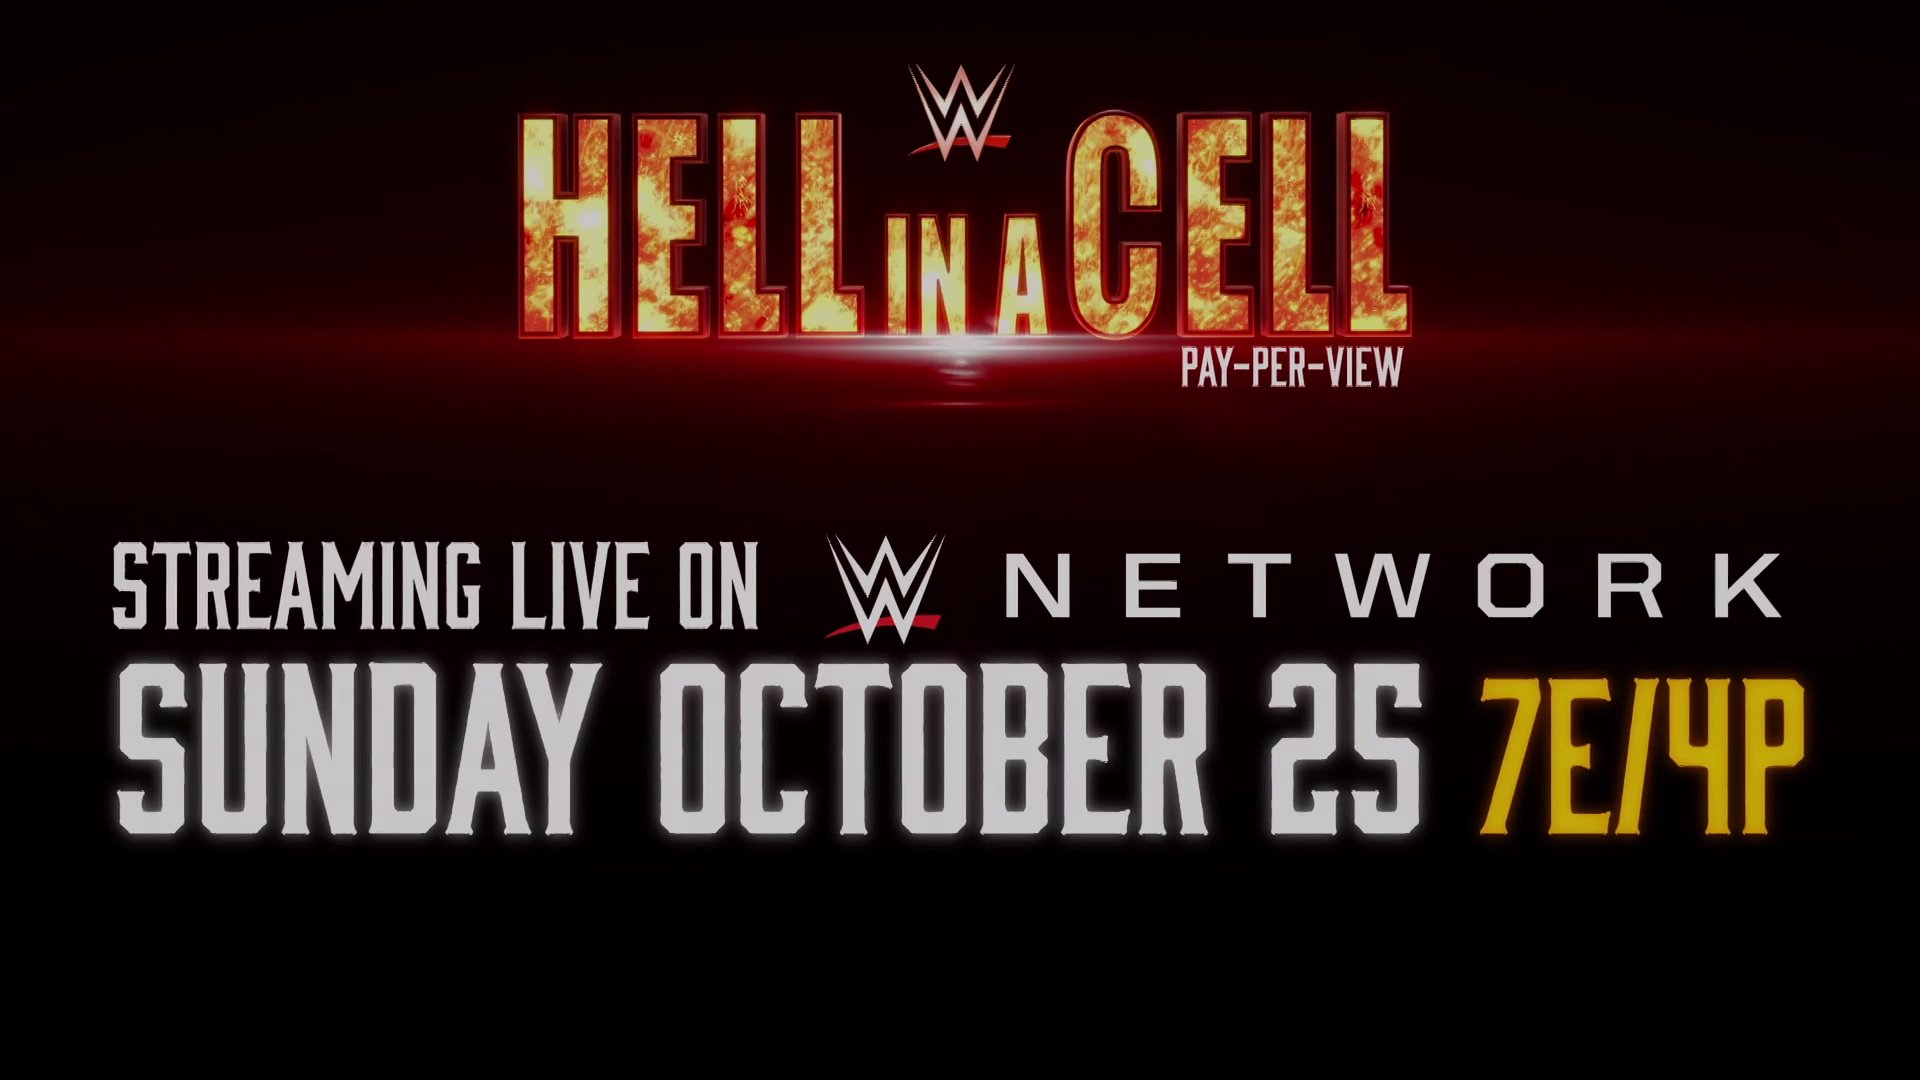 hell in a cell 2020 - photo #4